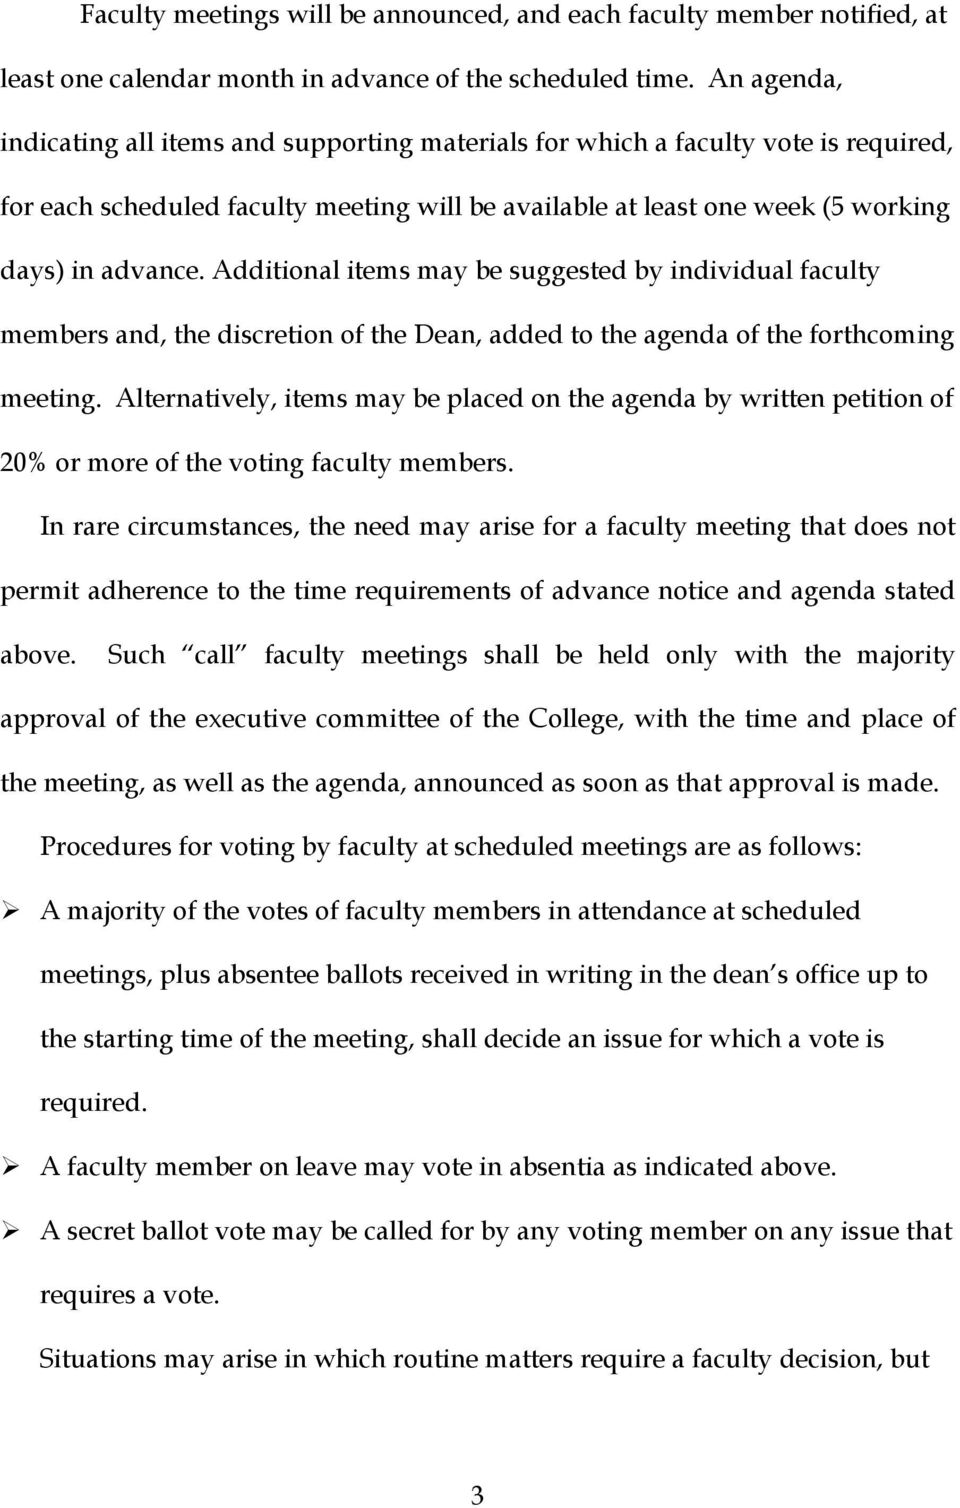 Additional items may be suggested by individual faculty members and, the discretion of the Dean, added to the agenda of the forthcoming meeting.